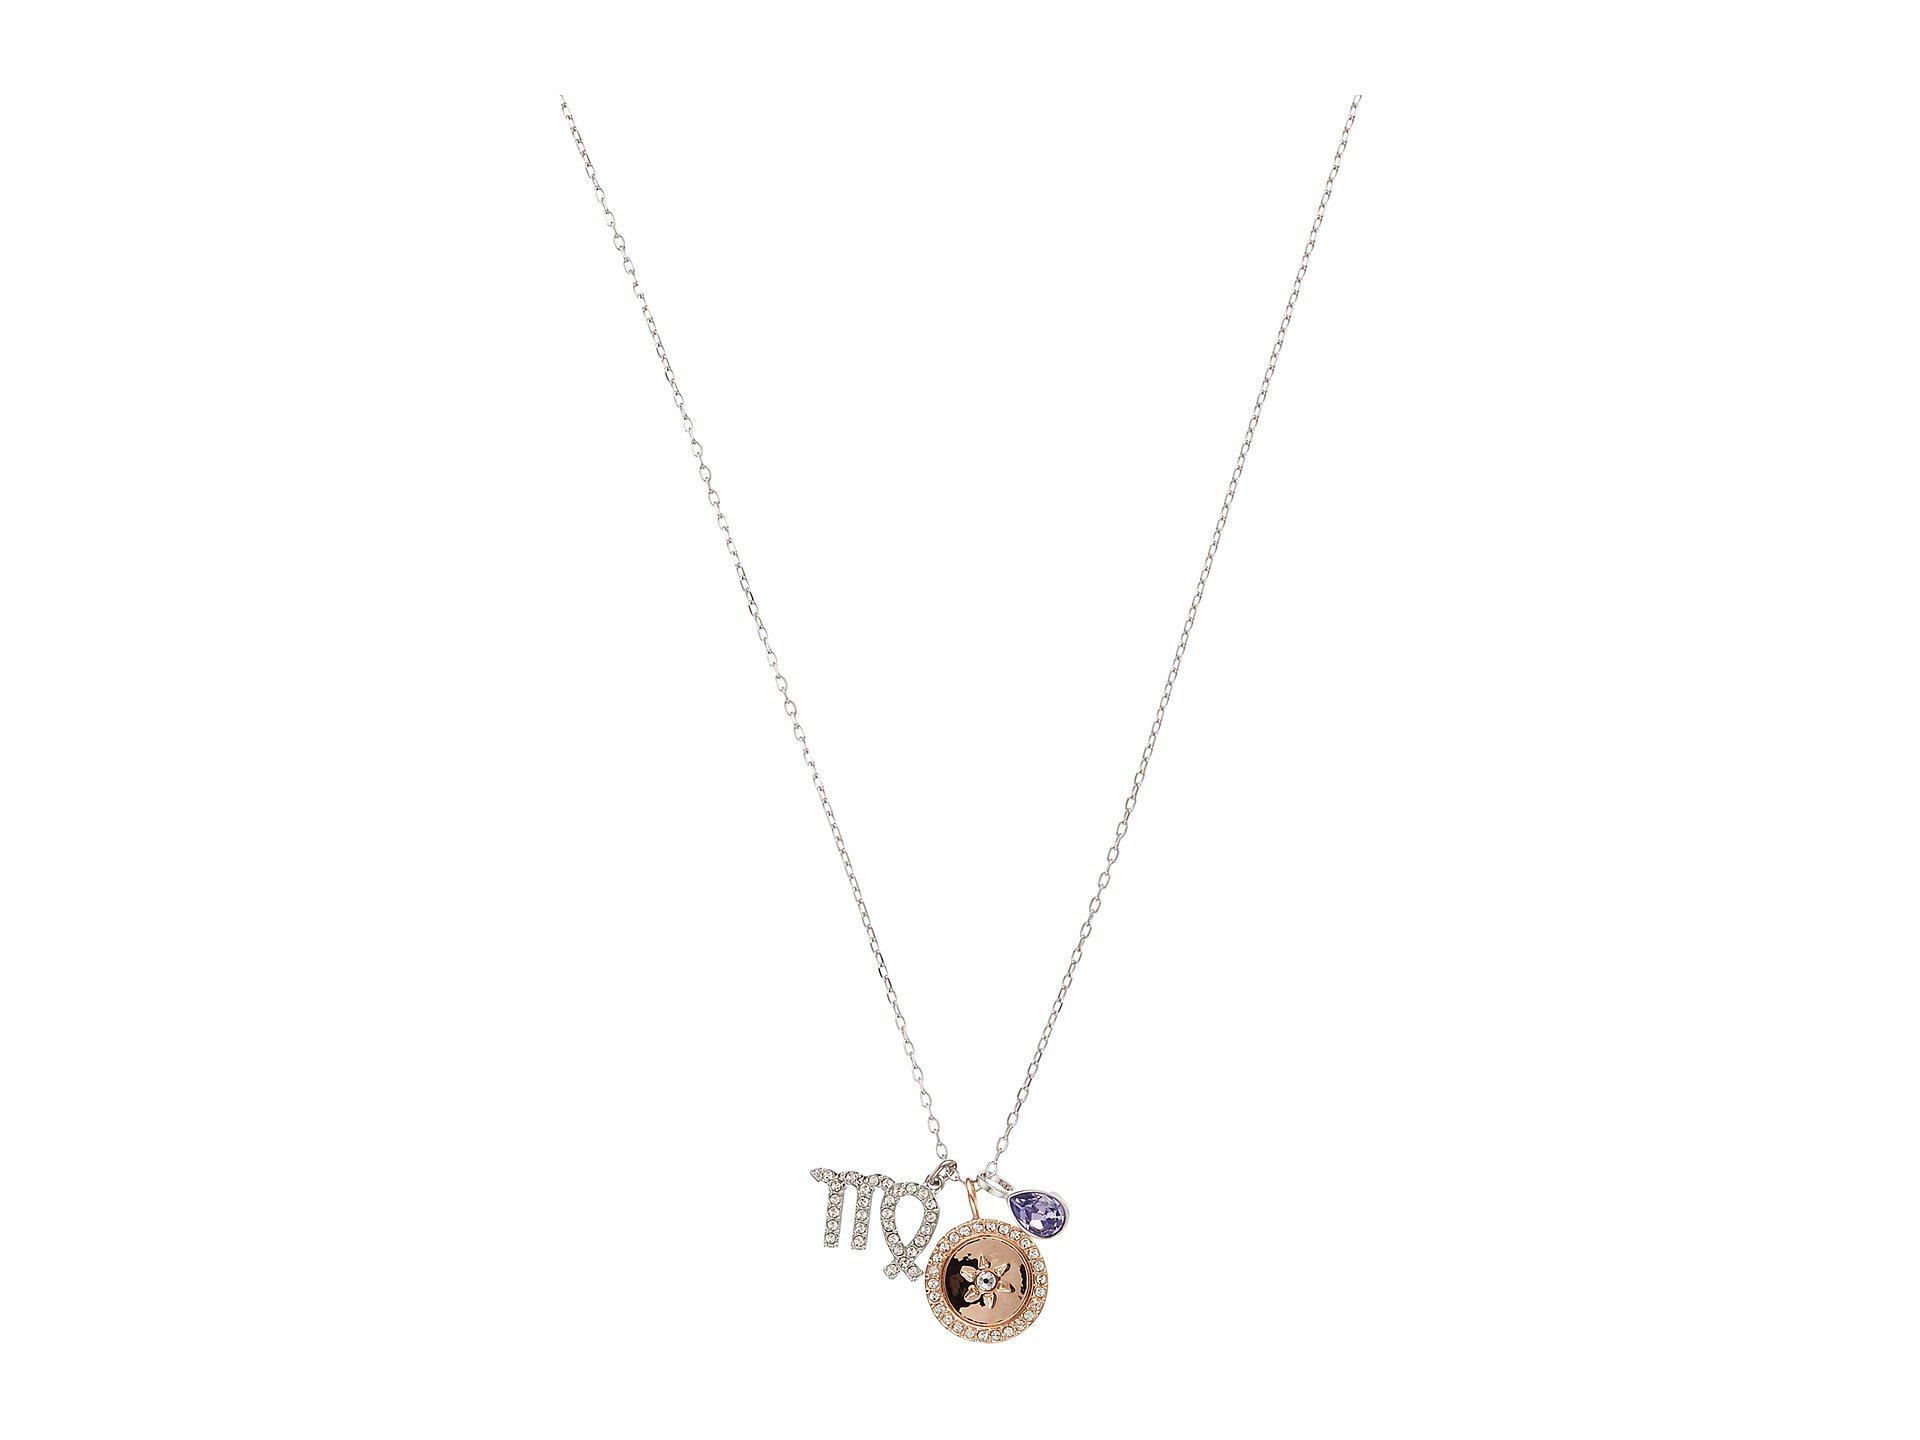 blinglane products zodiac virgo necklace